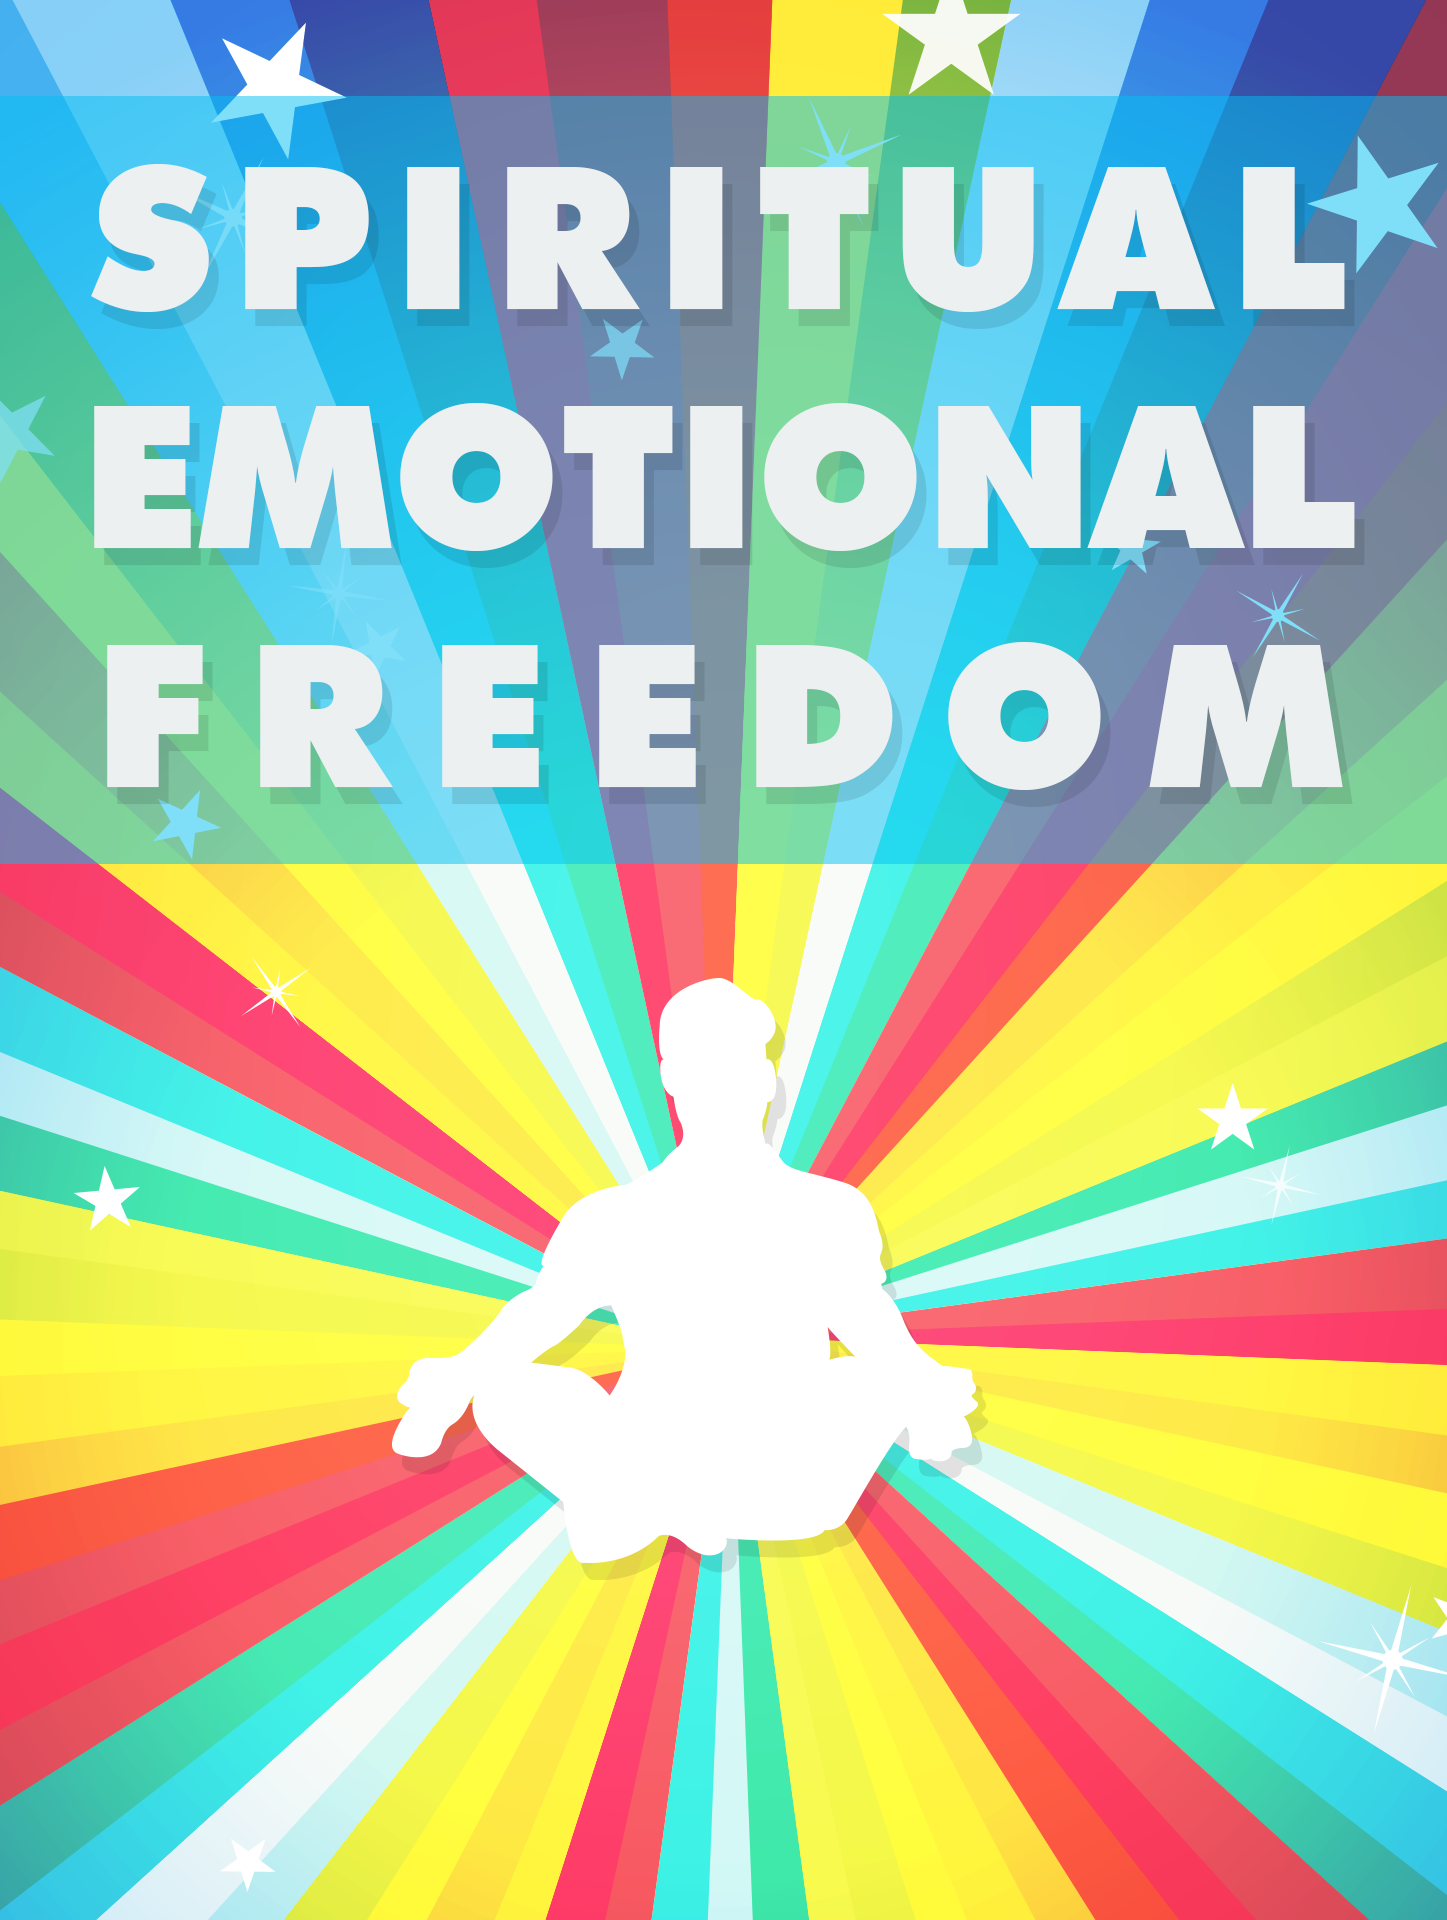 Spiritual Emotional Freedom Ebook's Ebook Image